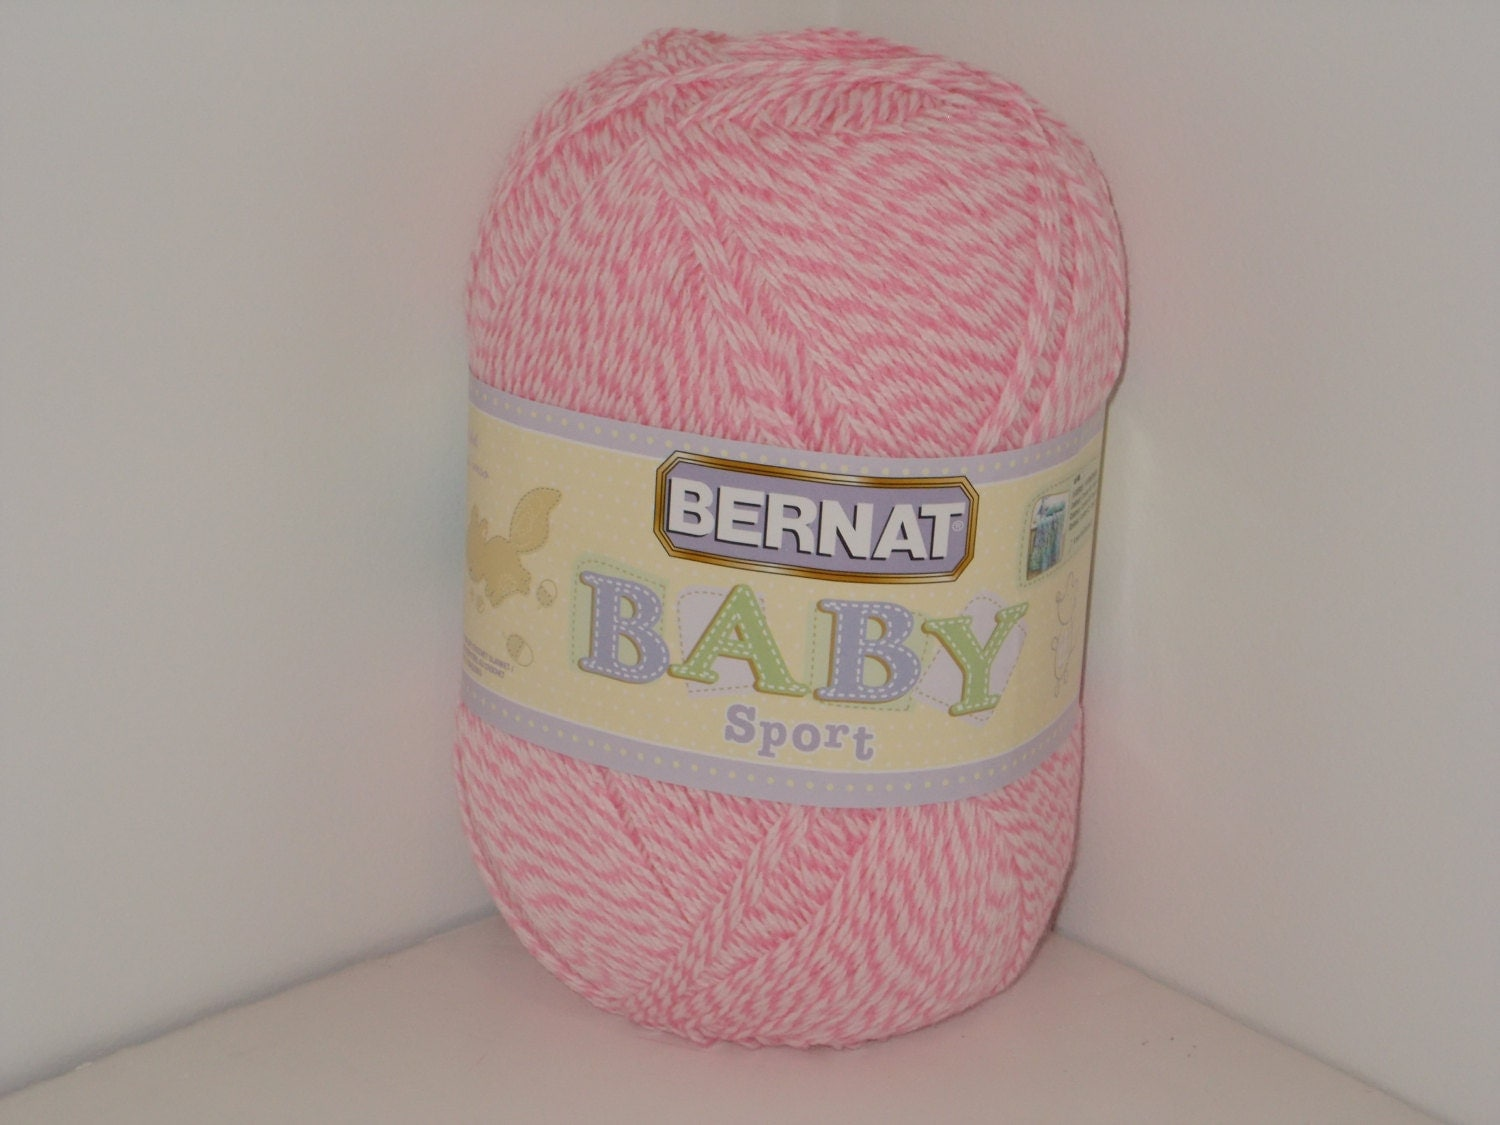 Knitting Patterns For Bernat Baby Sport Yarn : Bernat Baby Sport Big Ball Yarn Baby Pink Marl 12.3oz/350g